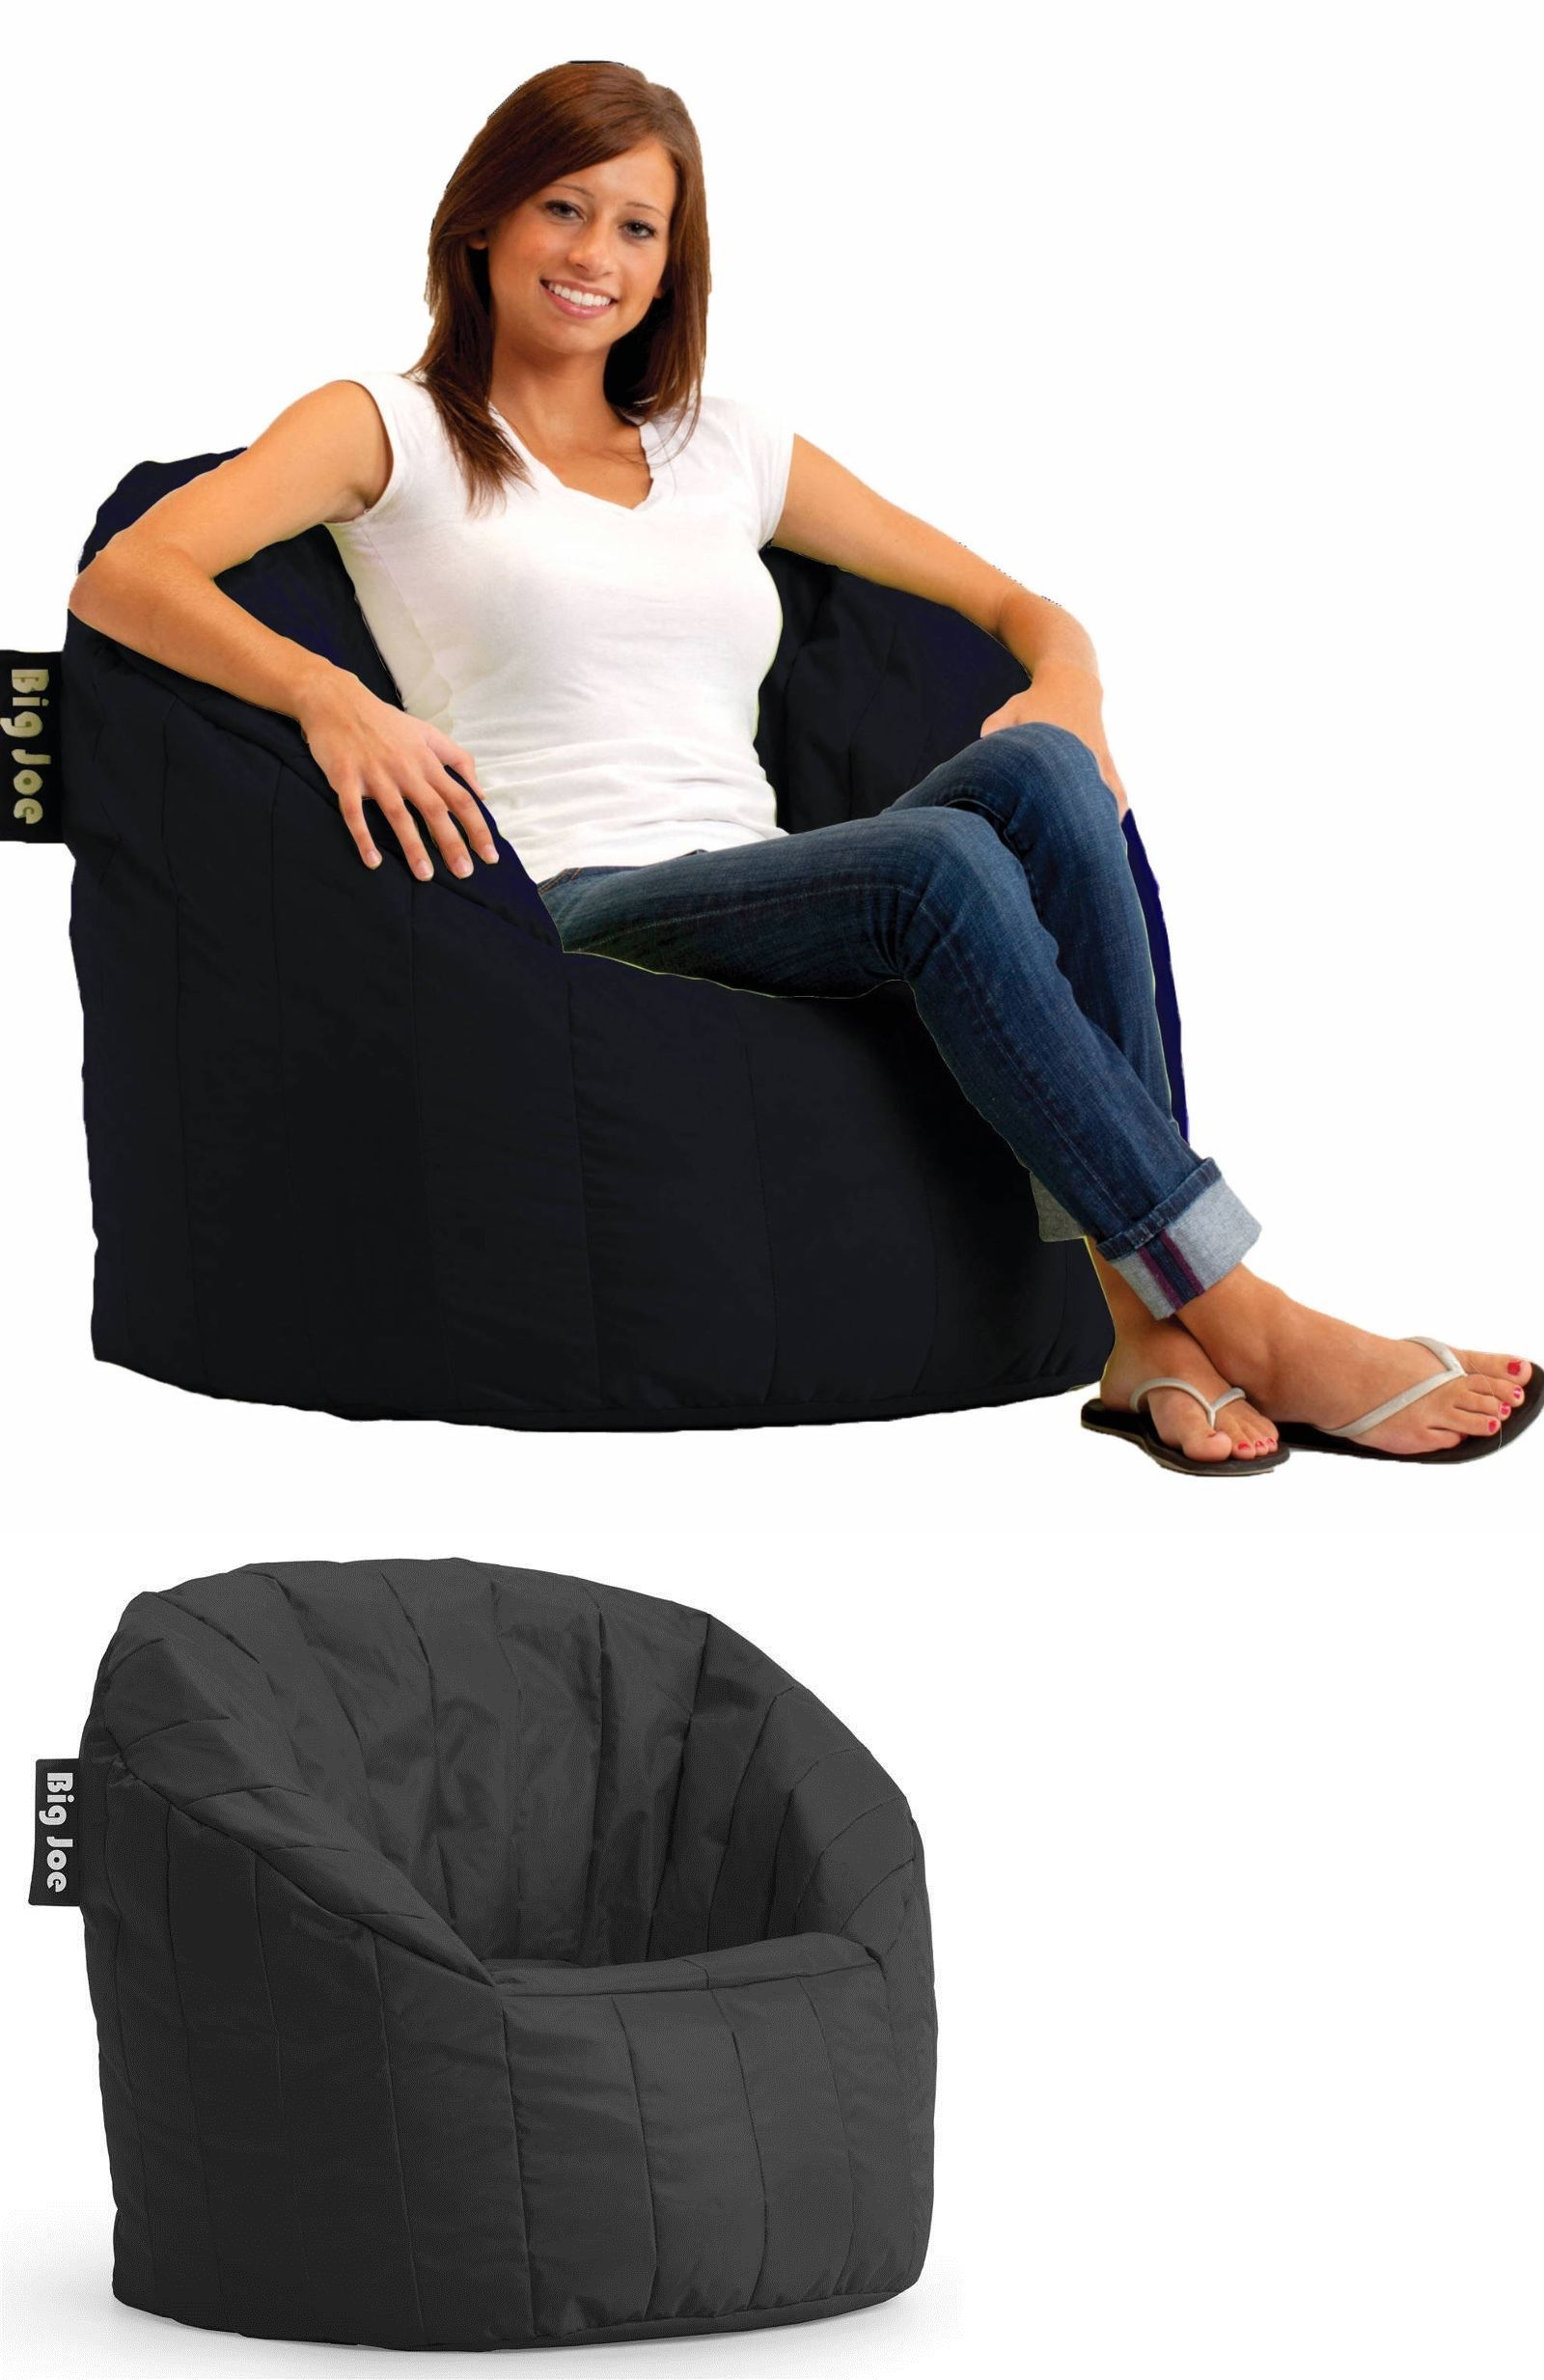 Bean Bags And Inflatables 48319 Black Bag Chair Cozy Lounger Lounge Game Room